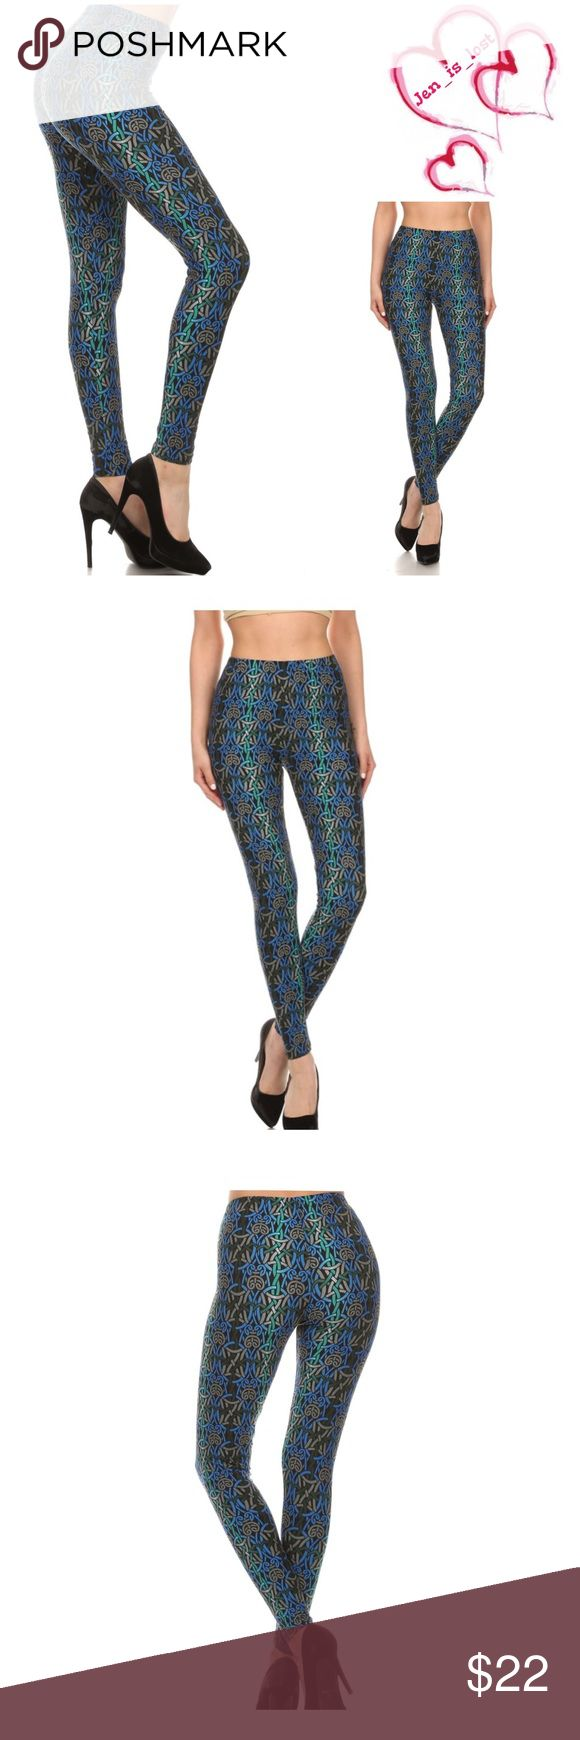 Metallic Printed Leggings Printed metallic looking, high waisted leggings with an elasticized waist band. Content: 92% POLYESTER 8% SPANDEX Pants Leggings